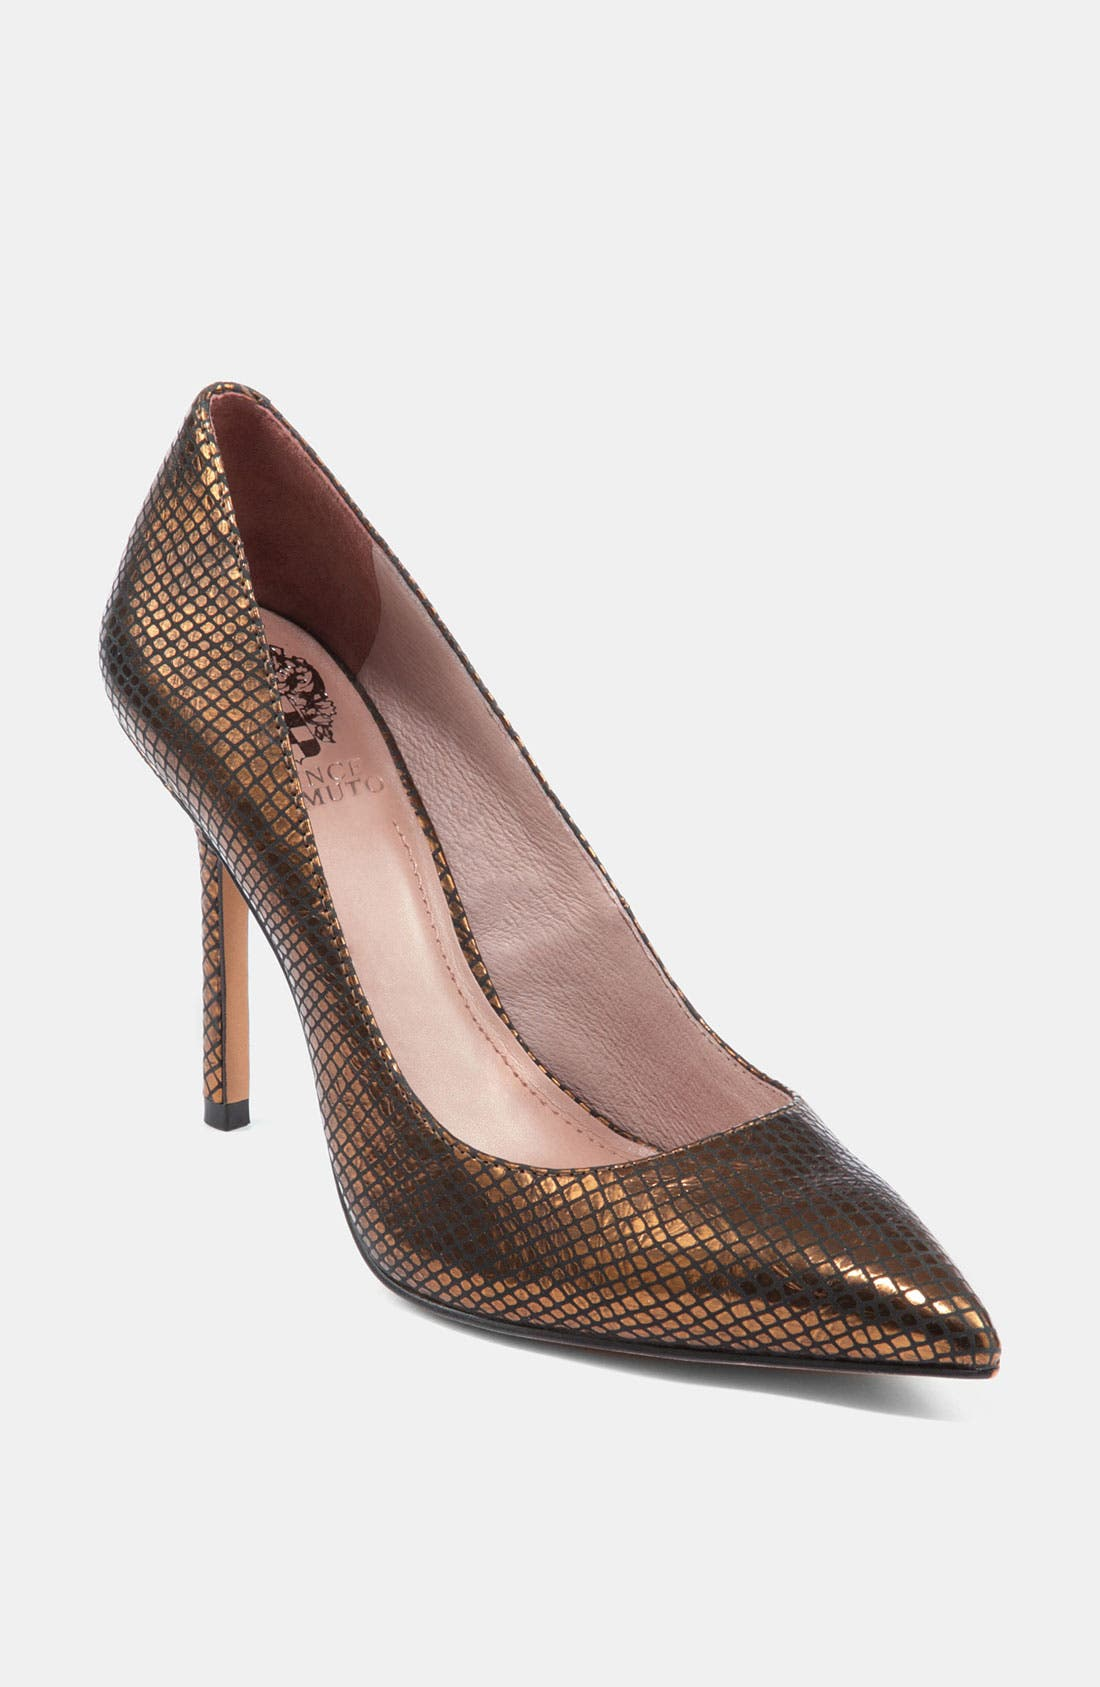 Main Image - Vince Camuto 'Harty' Pump